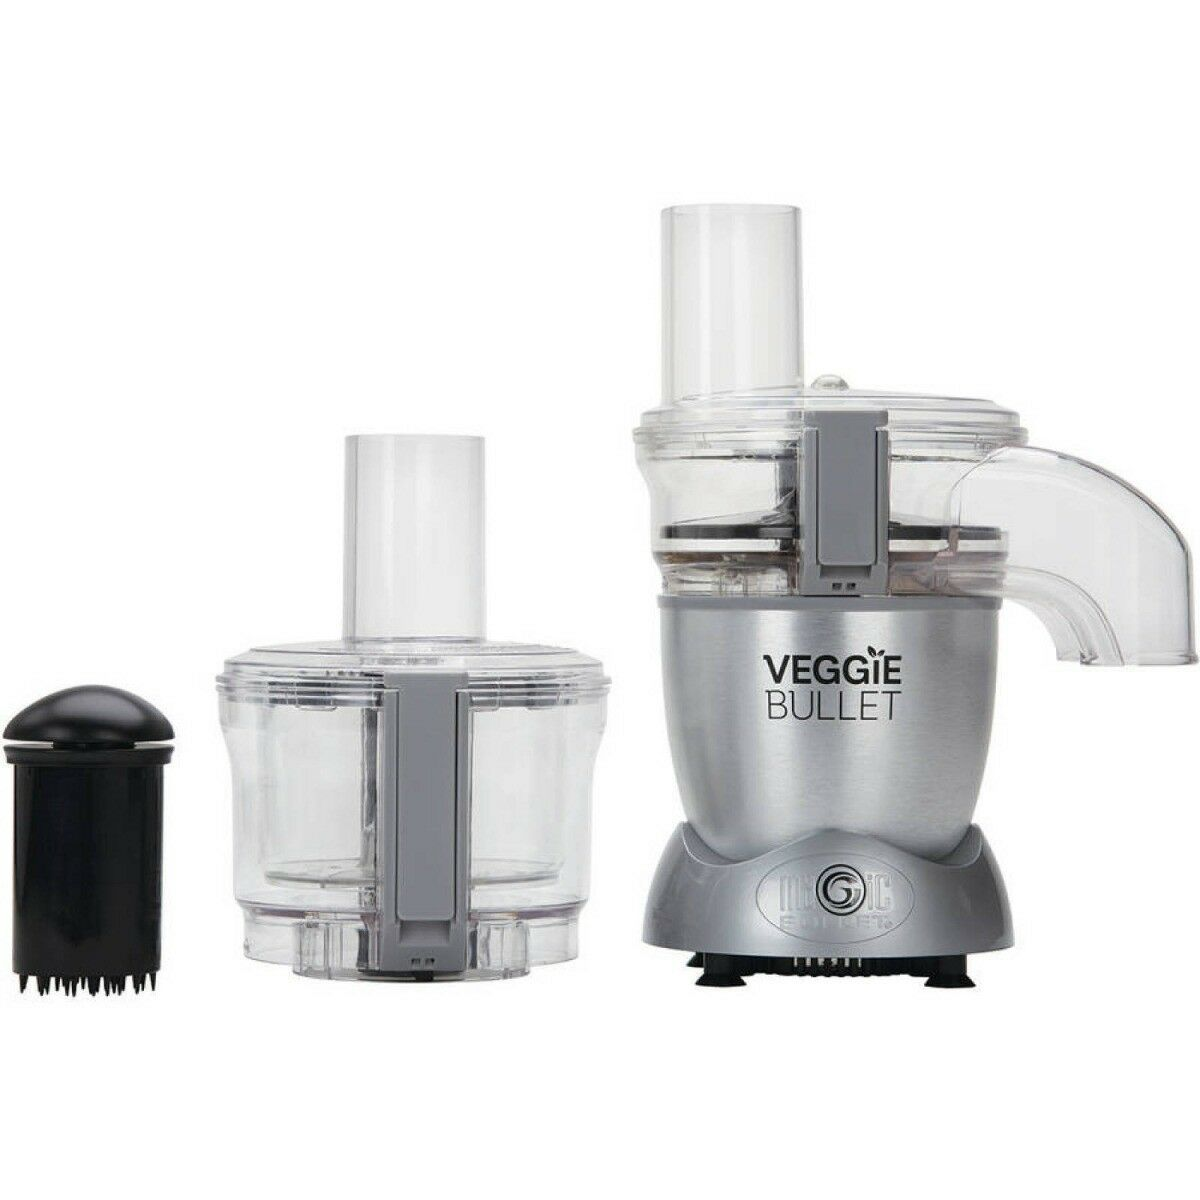 NutriBullet VBR1001 Veggie Bullet Food Processor